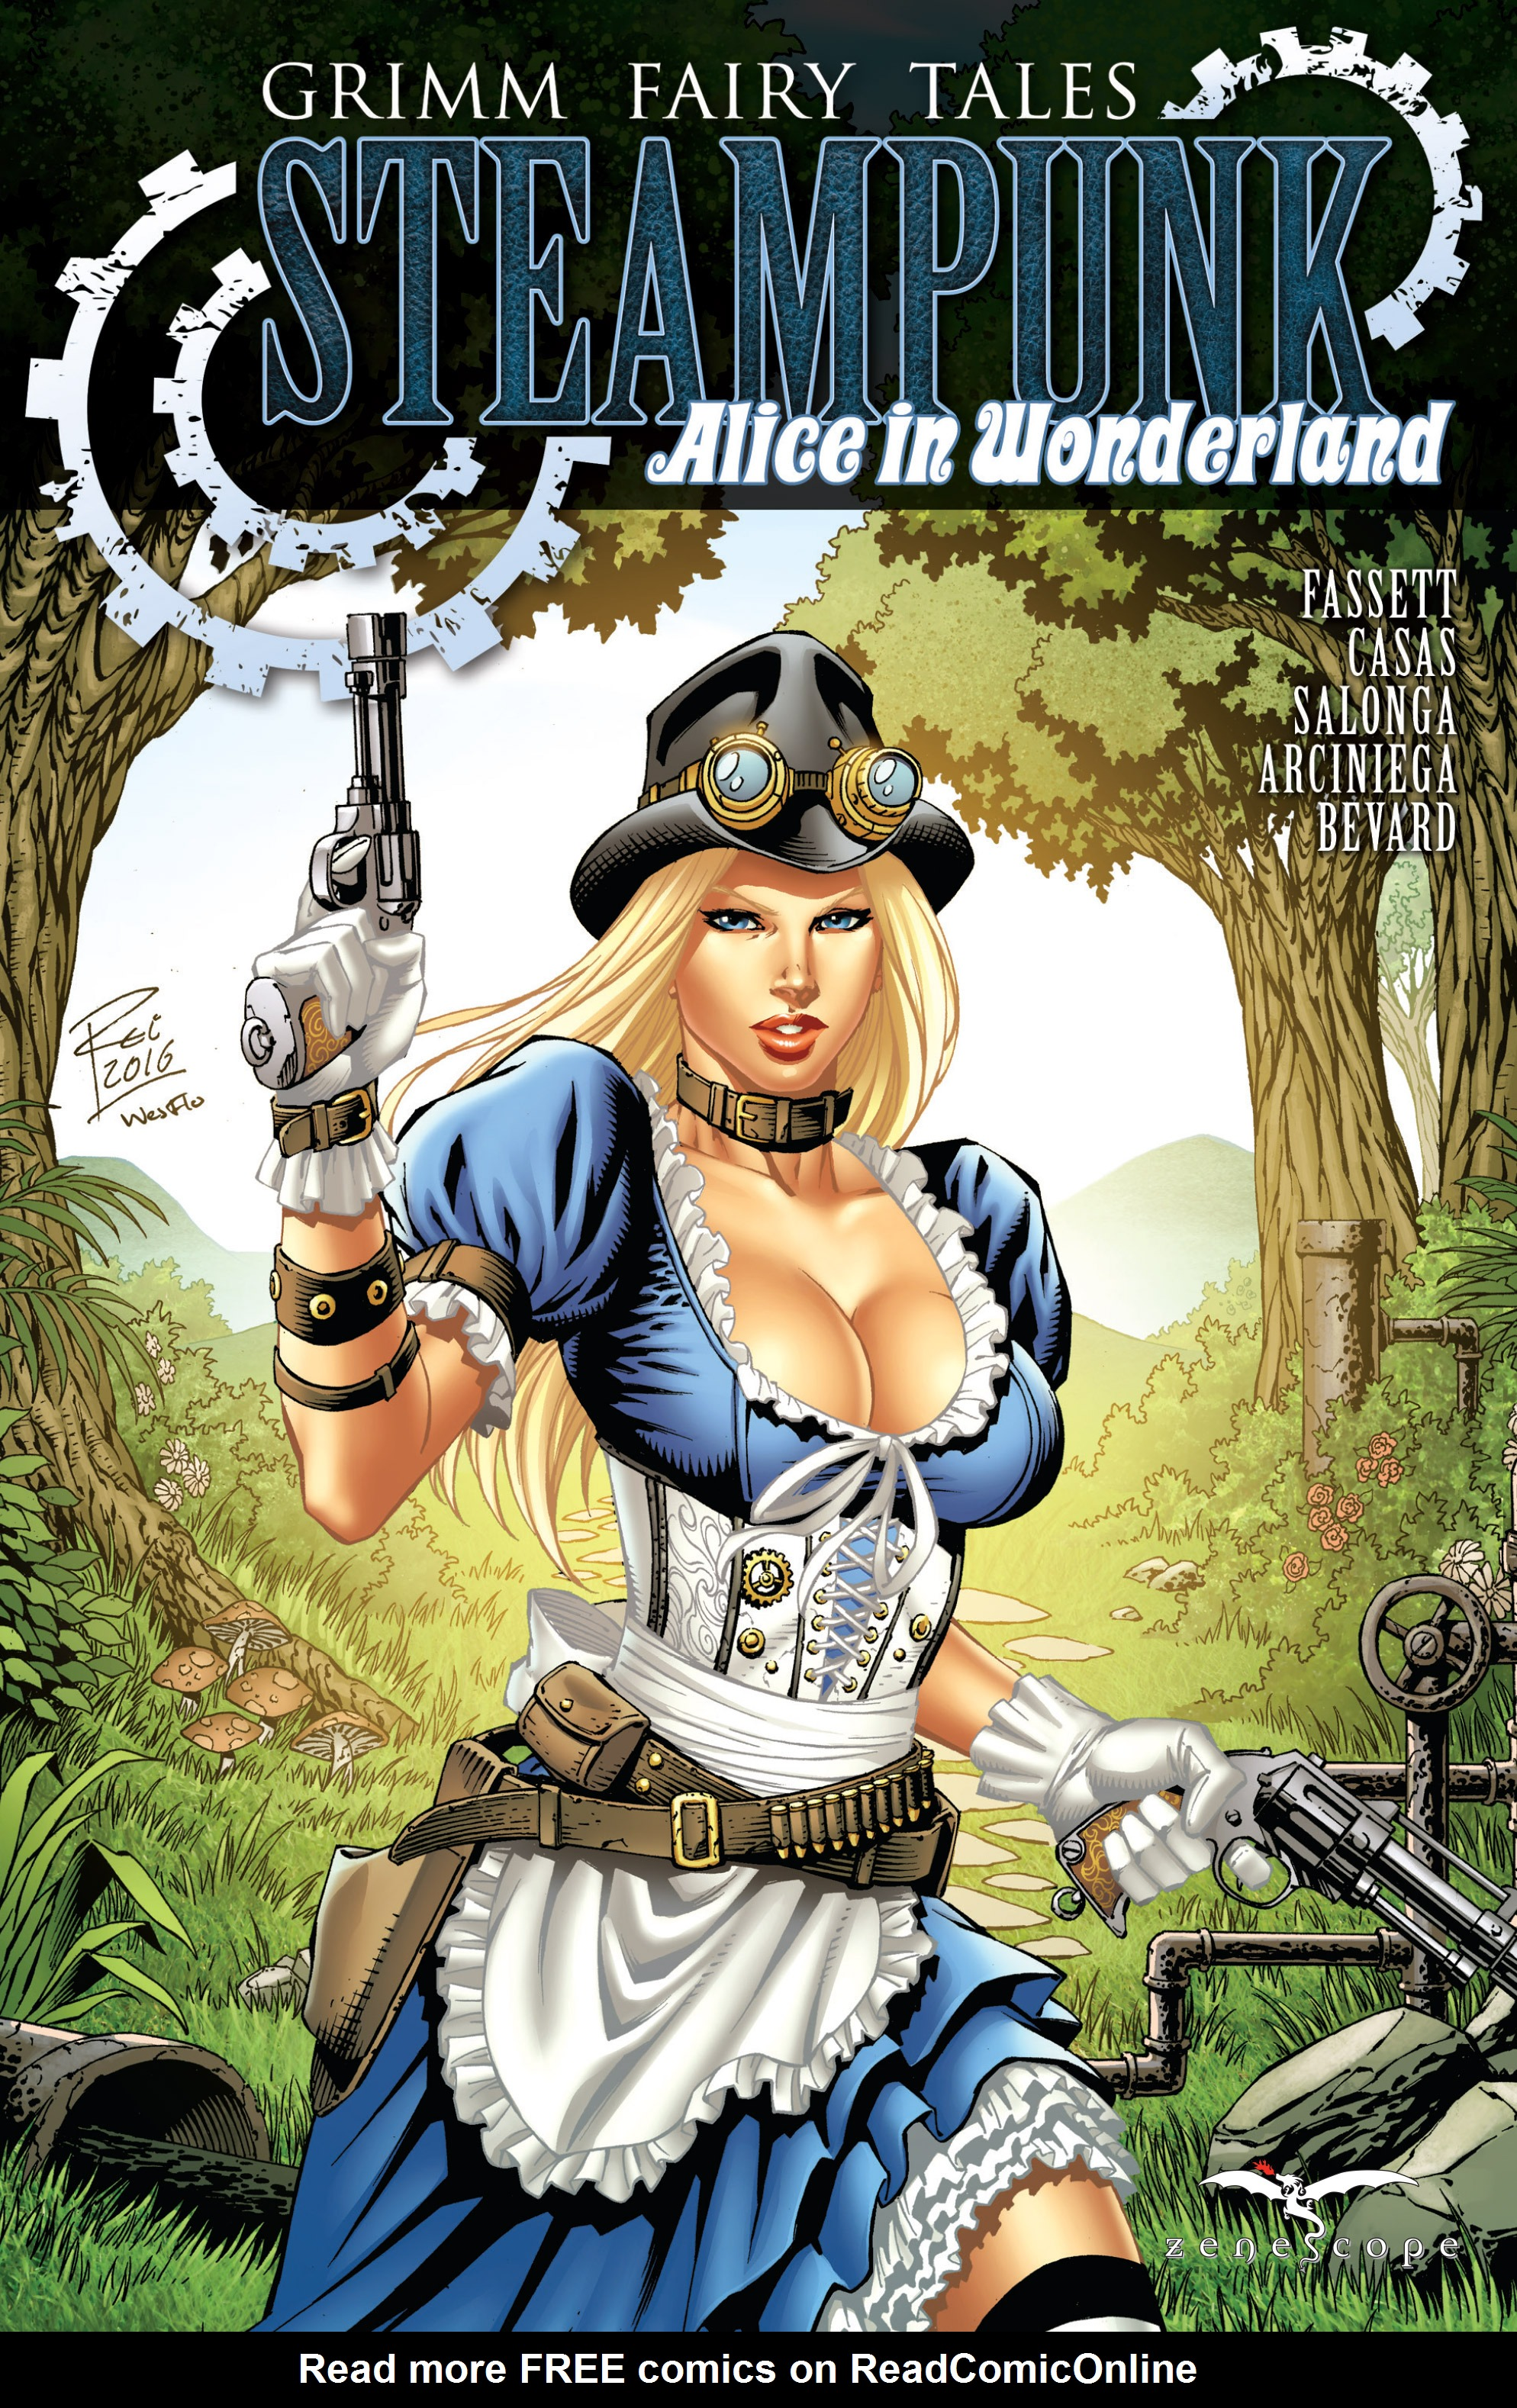 Read online Steampunk: Alice in Wonderland comic -  Issue # Full - 1